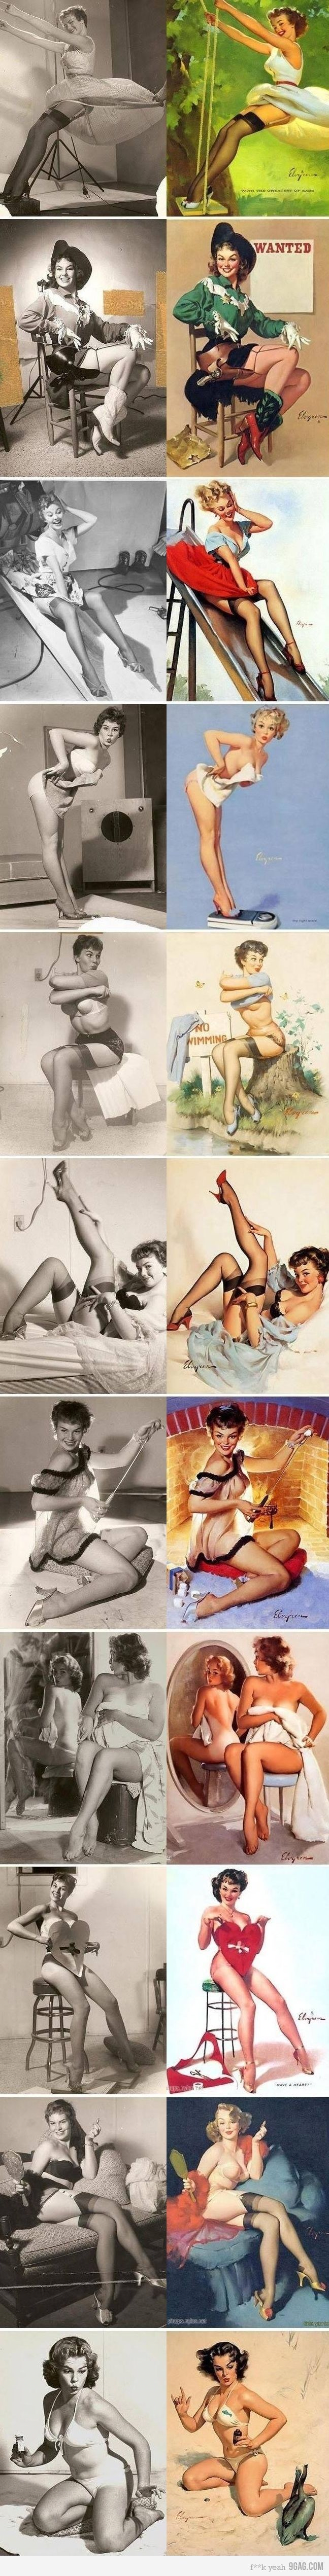 Interesting side by side of the actual models, and then the vintage pin-up illustration.